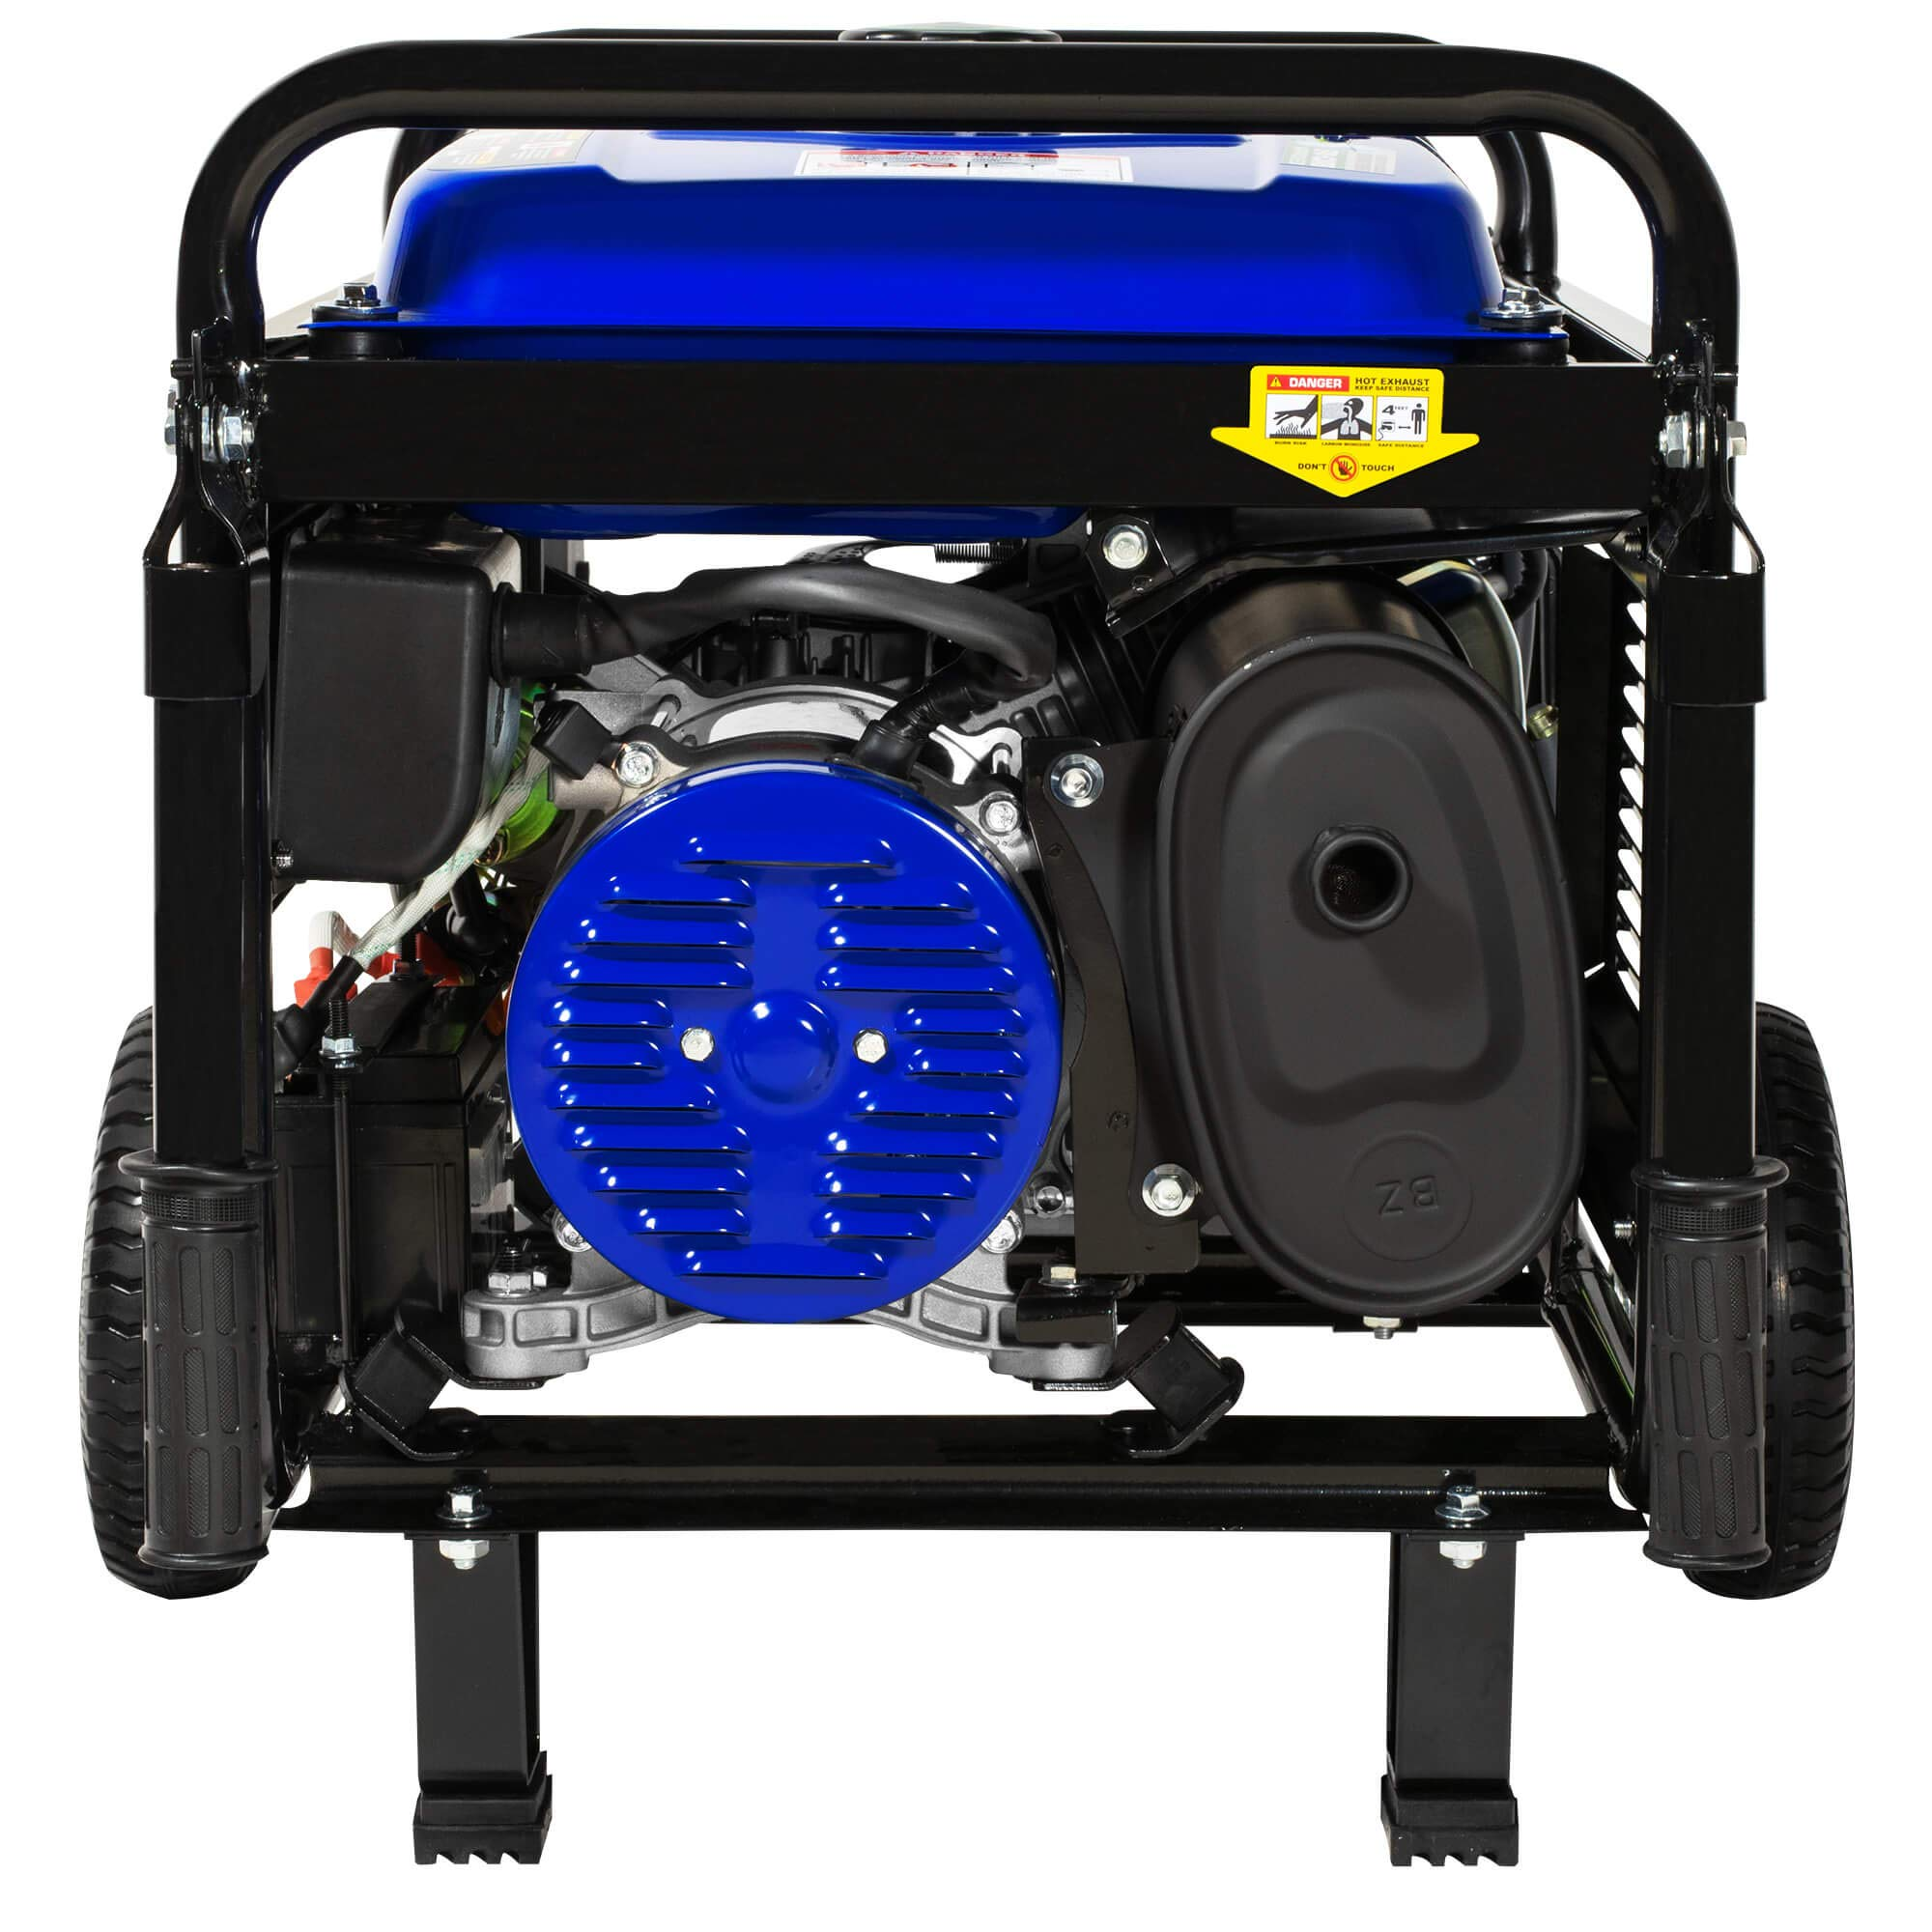 DuroMax XP5500EH 5,500 Watt 7.5 HP Portable Electric Start Dual Fuel Gas/Propane Generator by DuroMax (Image #6)